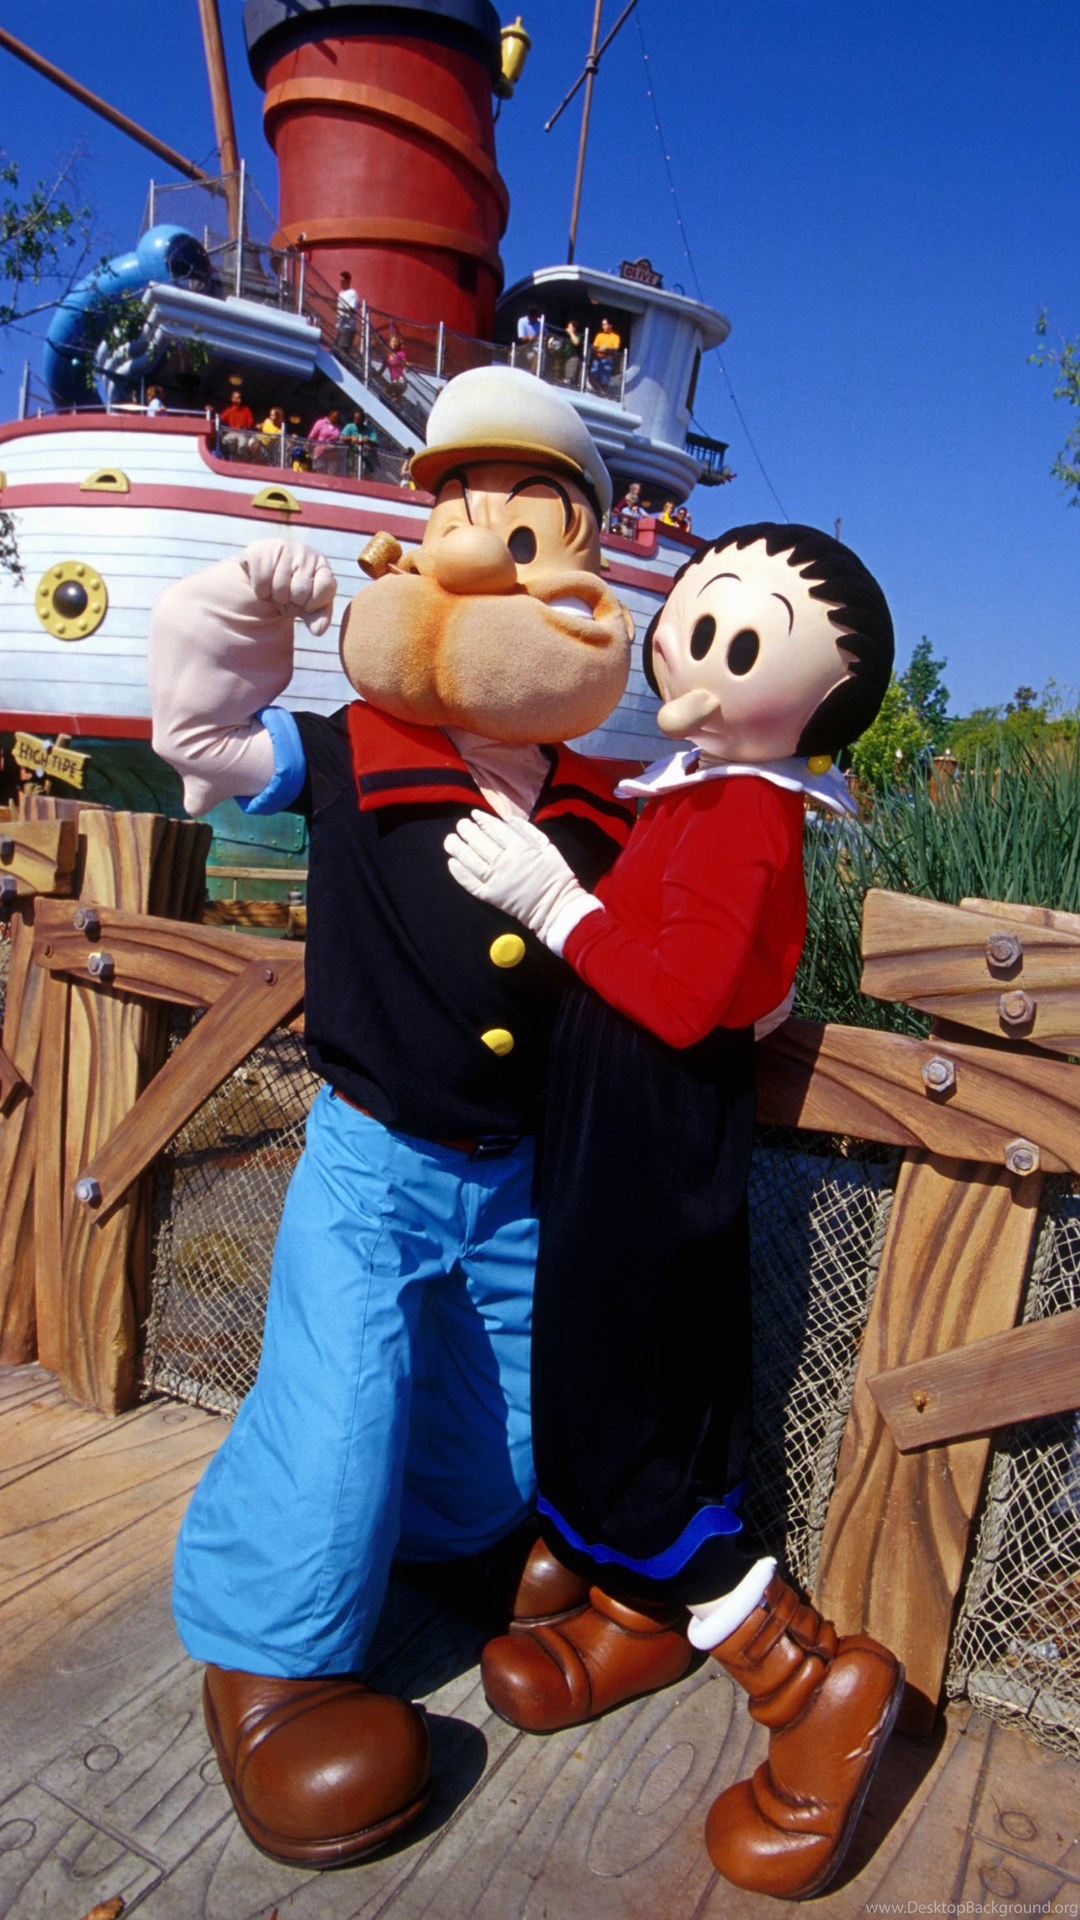 popeye me ship cartoon wallpapers for phone cartoons wallpapers